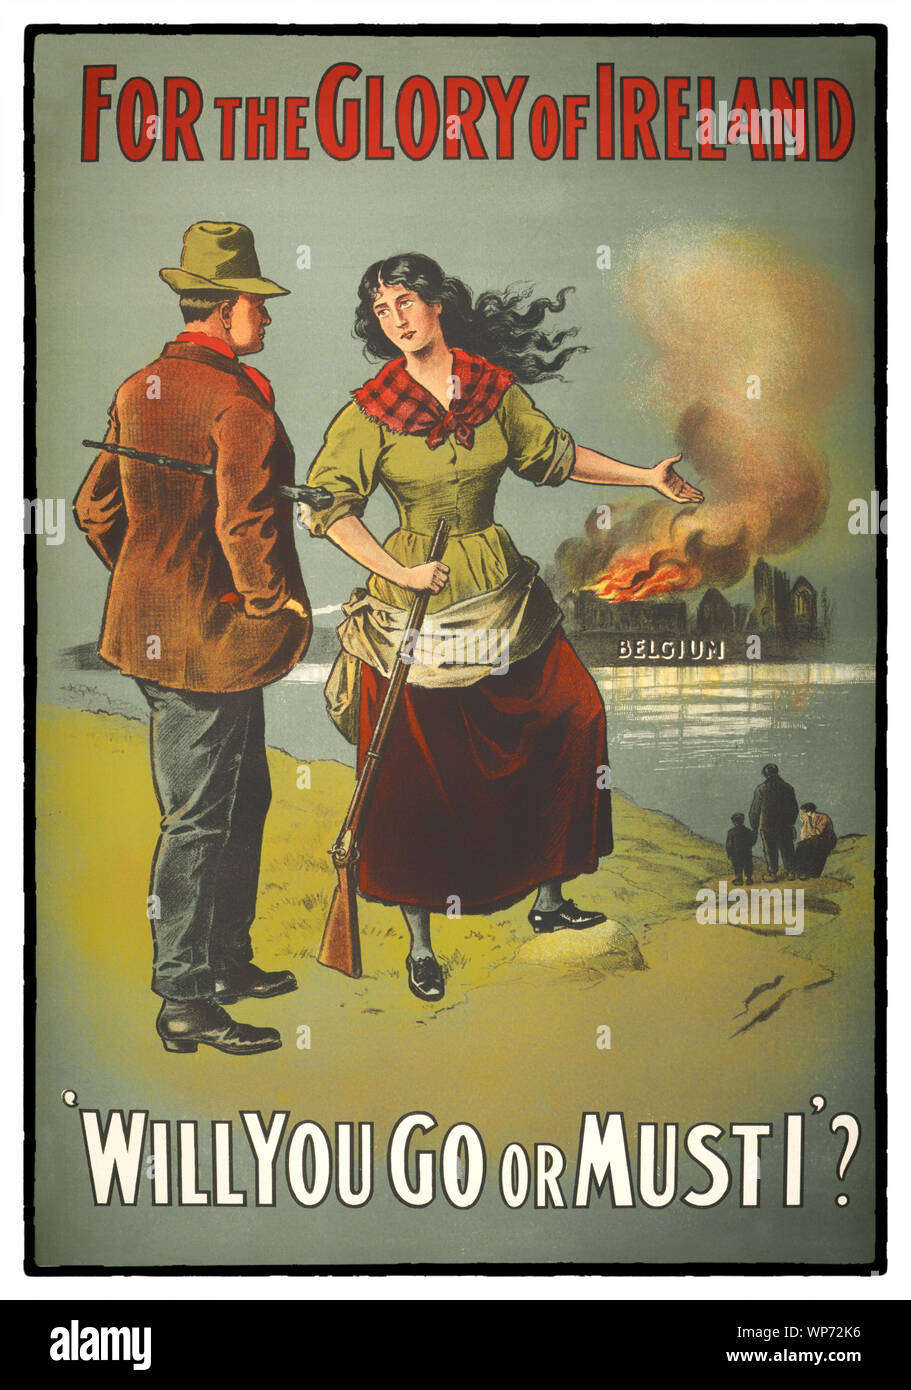 During World War I, (1914–1918) the impact of the poster as a means of communication was greater than at any other time during history, asking men to do their duty and join the military forces.  The recruitment camapign used women to encourage men to join the British Army at the Westrn Front in Flanders. At the outbreak of war, most Irish people, regardless of political affiliation, supported the war in much the same way as their British counterparts, and both nationalist and unionist leaders initially backed the British war effort. Stock Photo